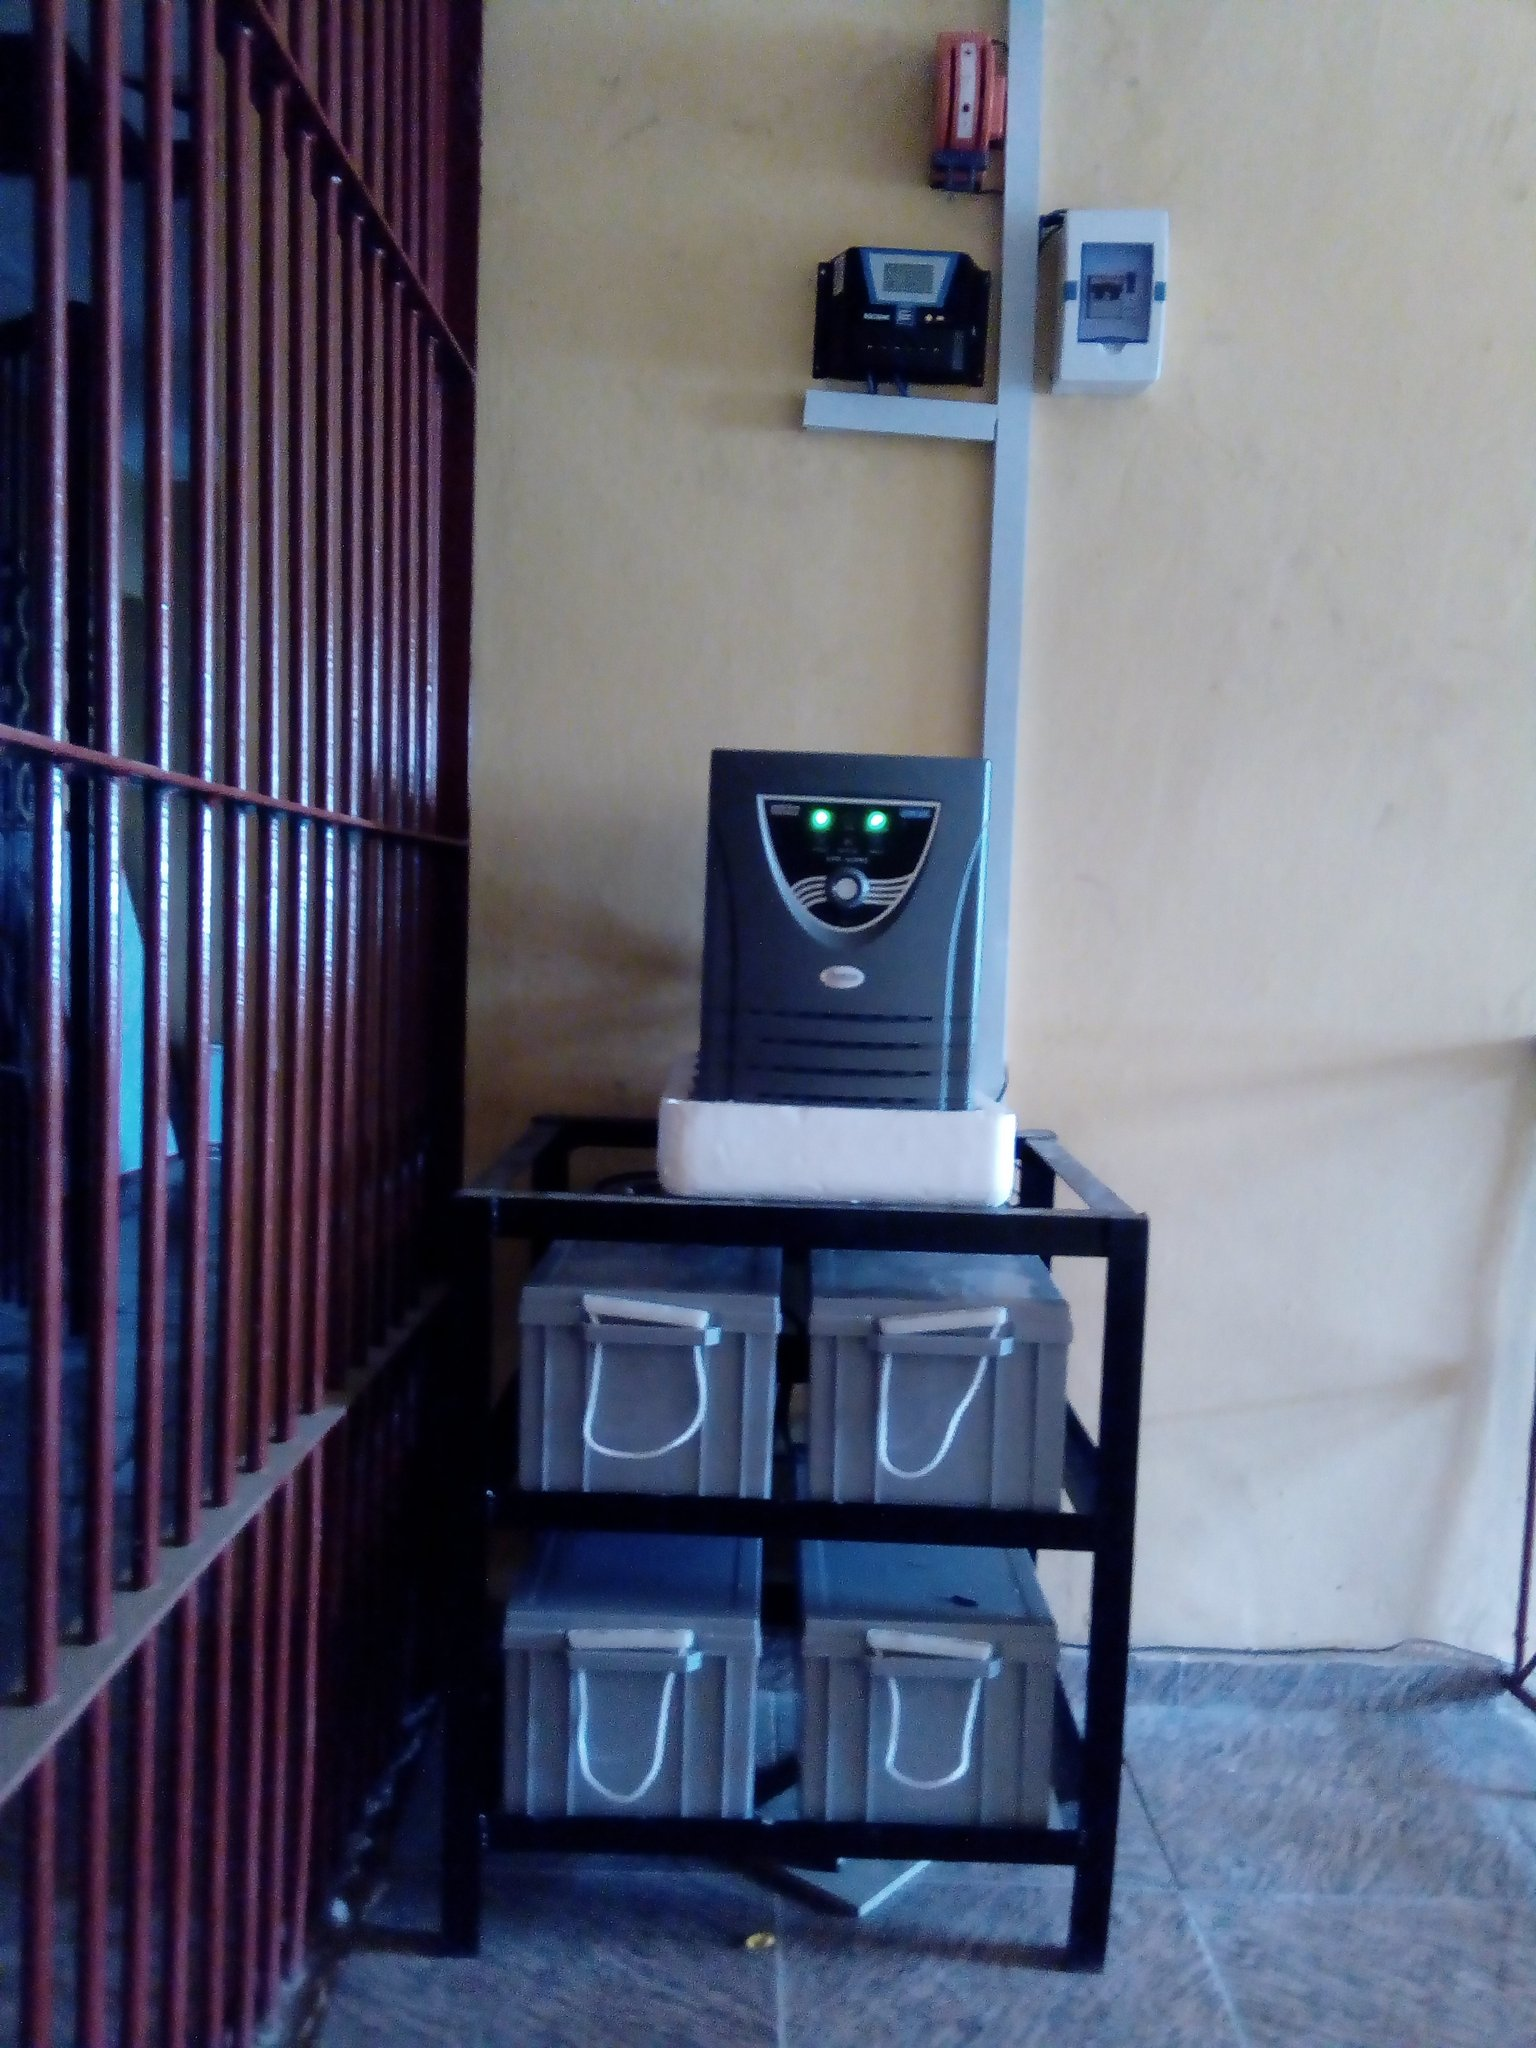 3.5kVA installed by GRIENSOLAR